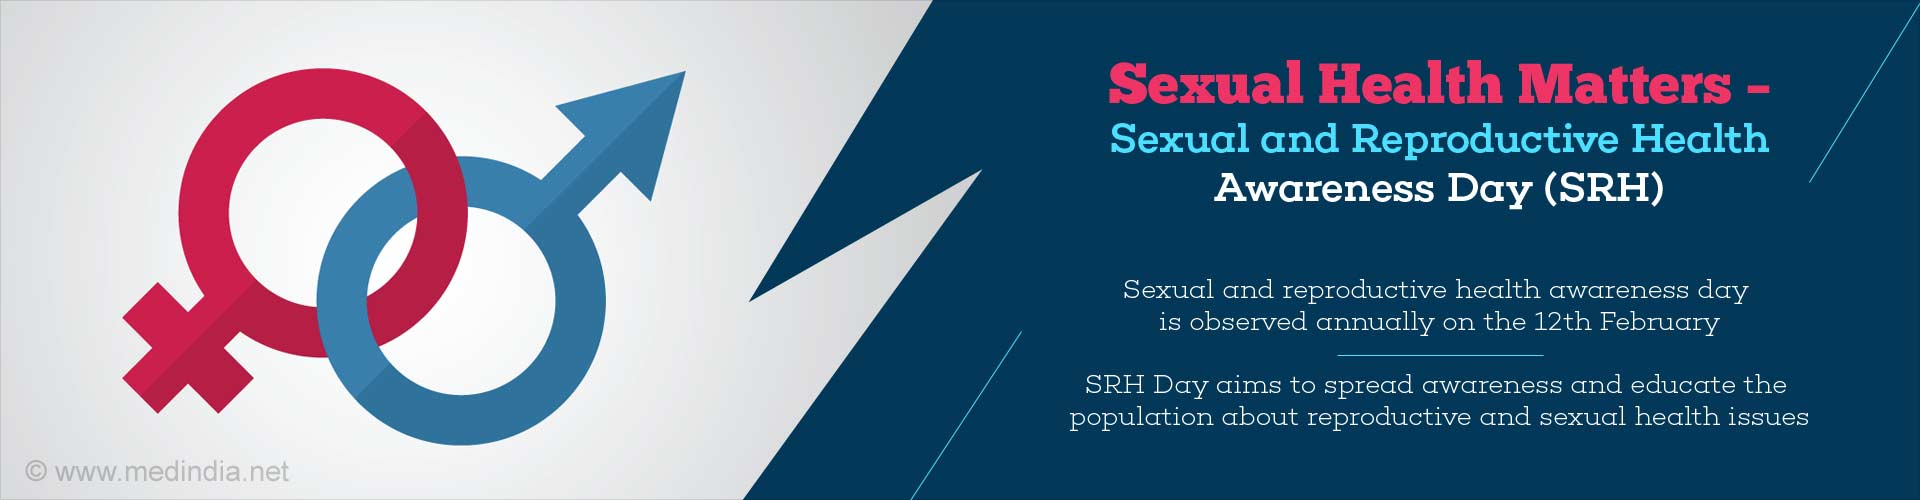 Sexual and Reproductive Health Awareness - Every Woman Has A Right To It